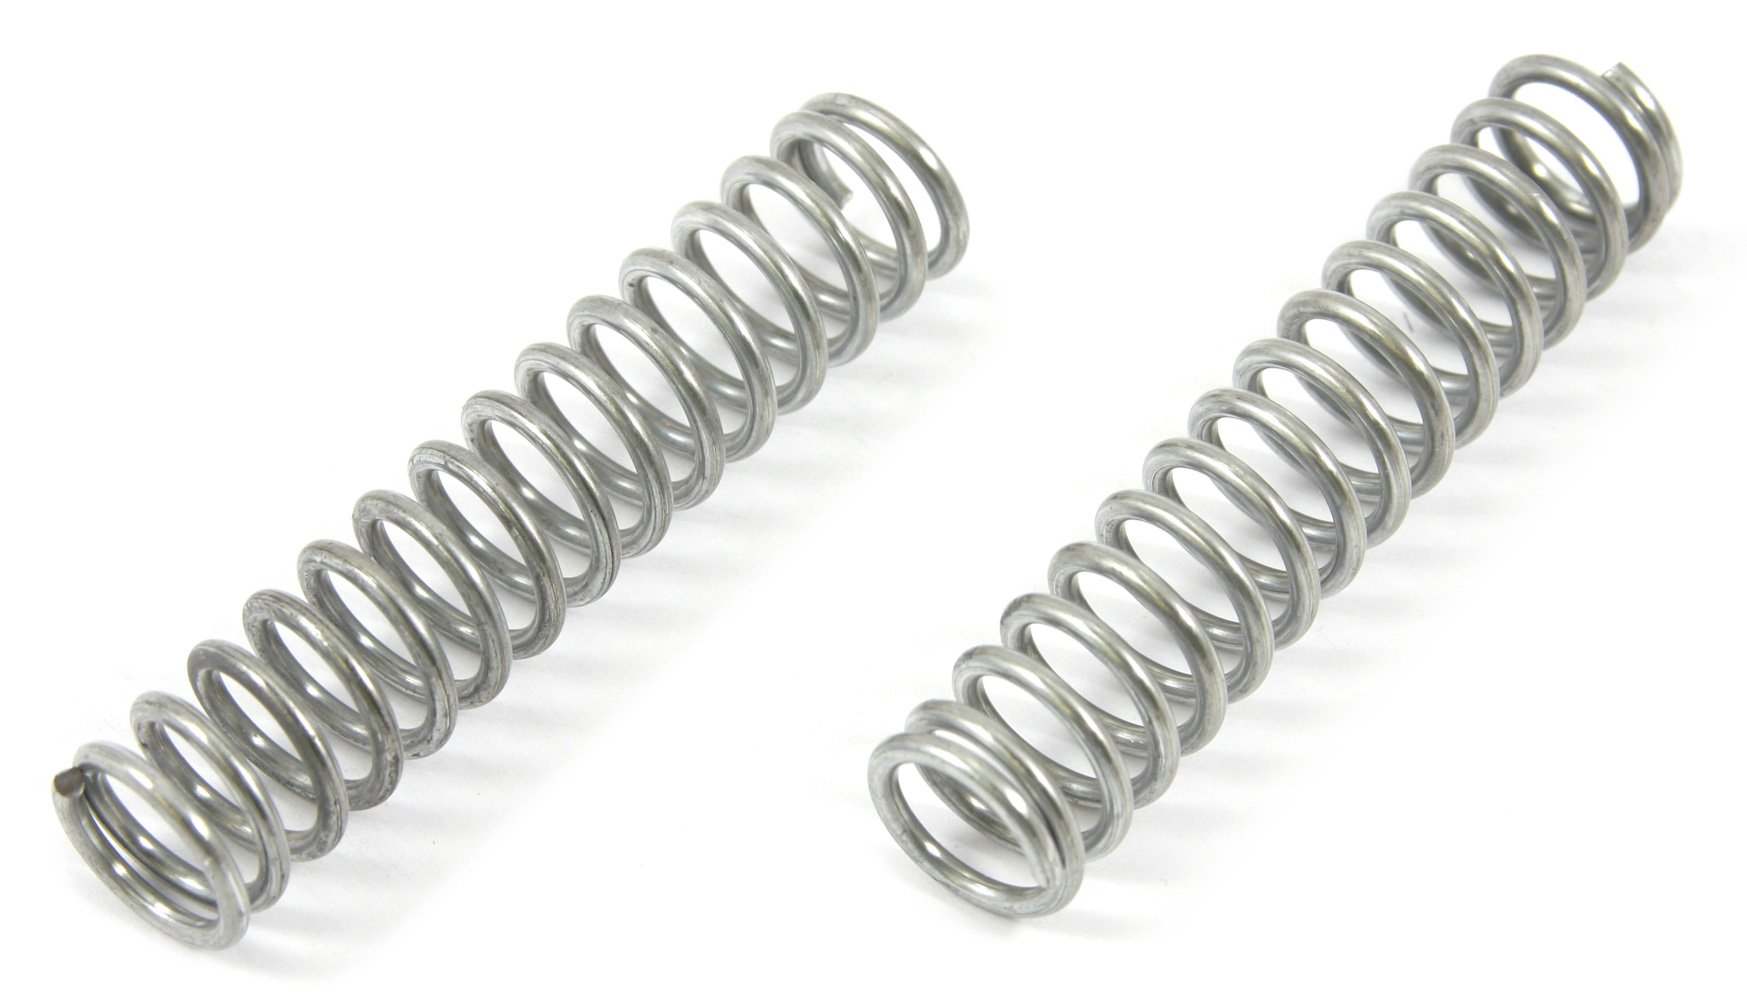 Forney 72650 Wire Spring Compression, 5/8-Inch-by-3-Inch-by-.080-Inch, 2-Pack